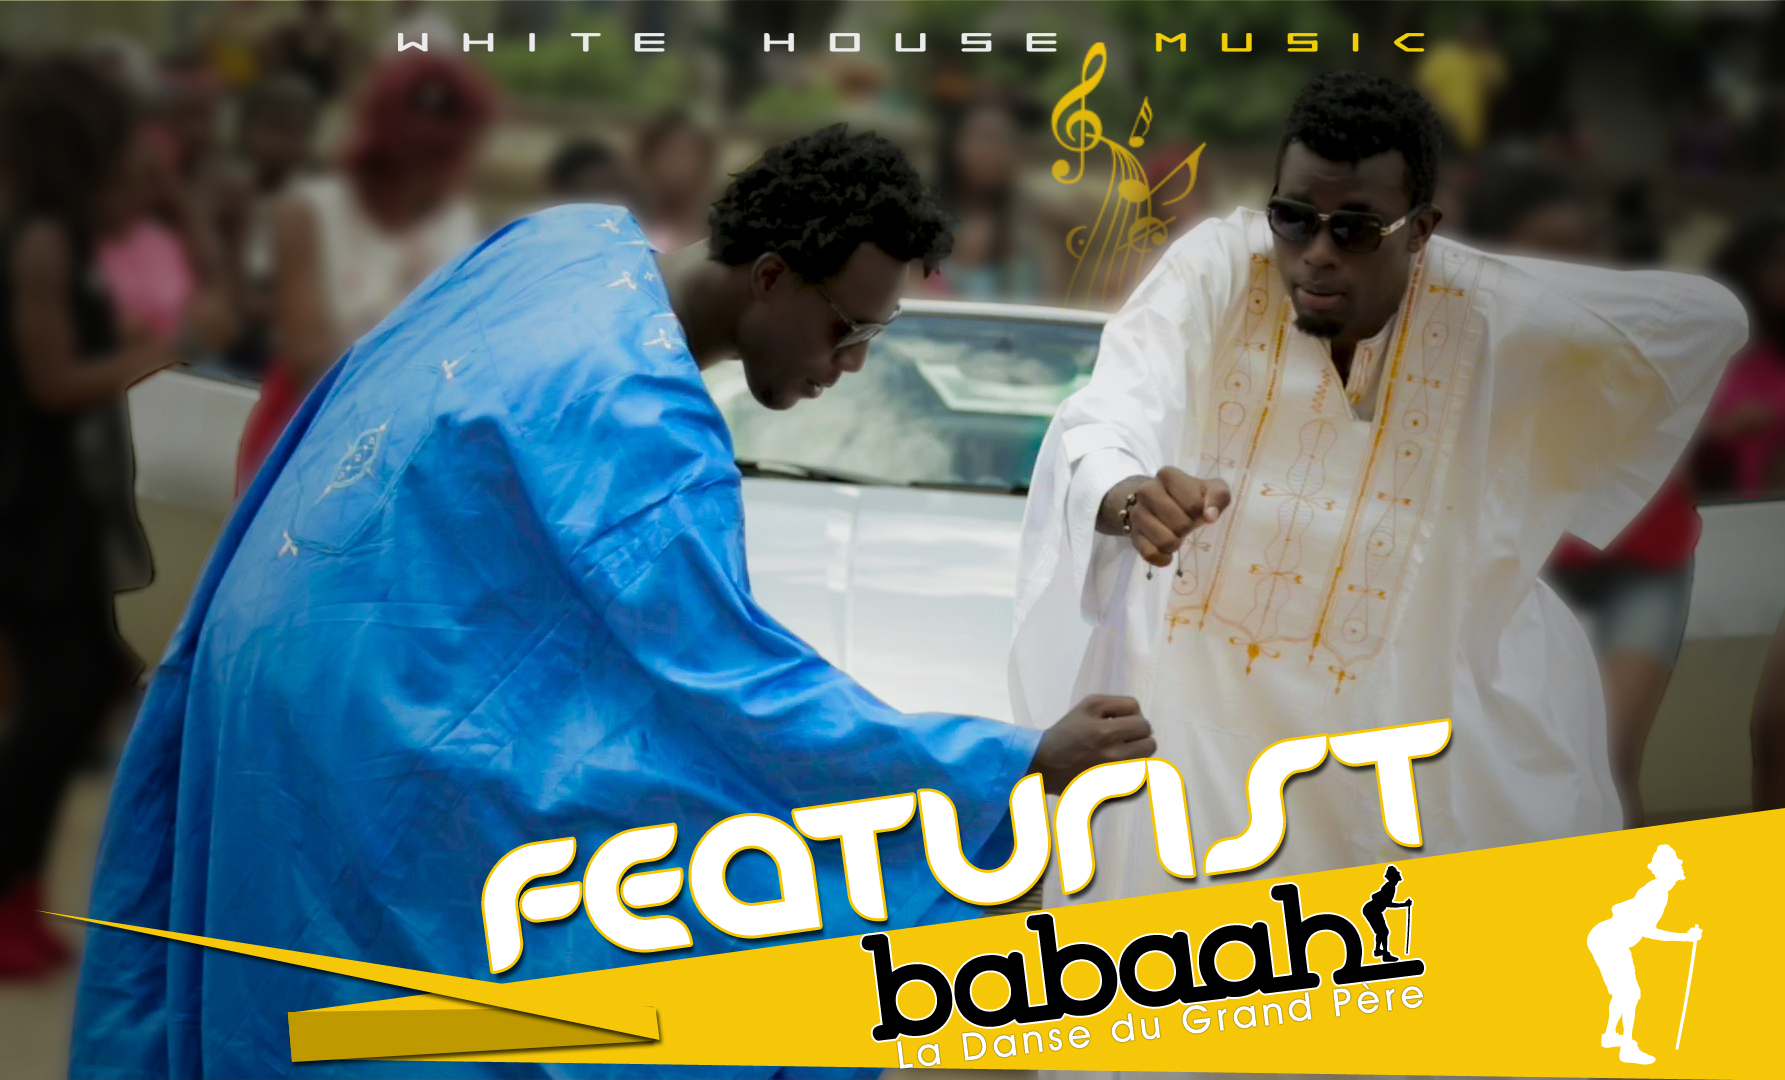 featurist babaah mp3